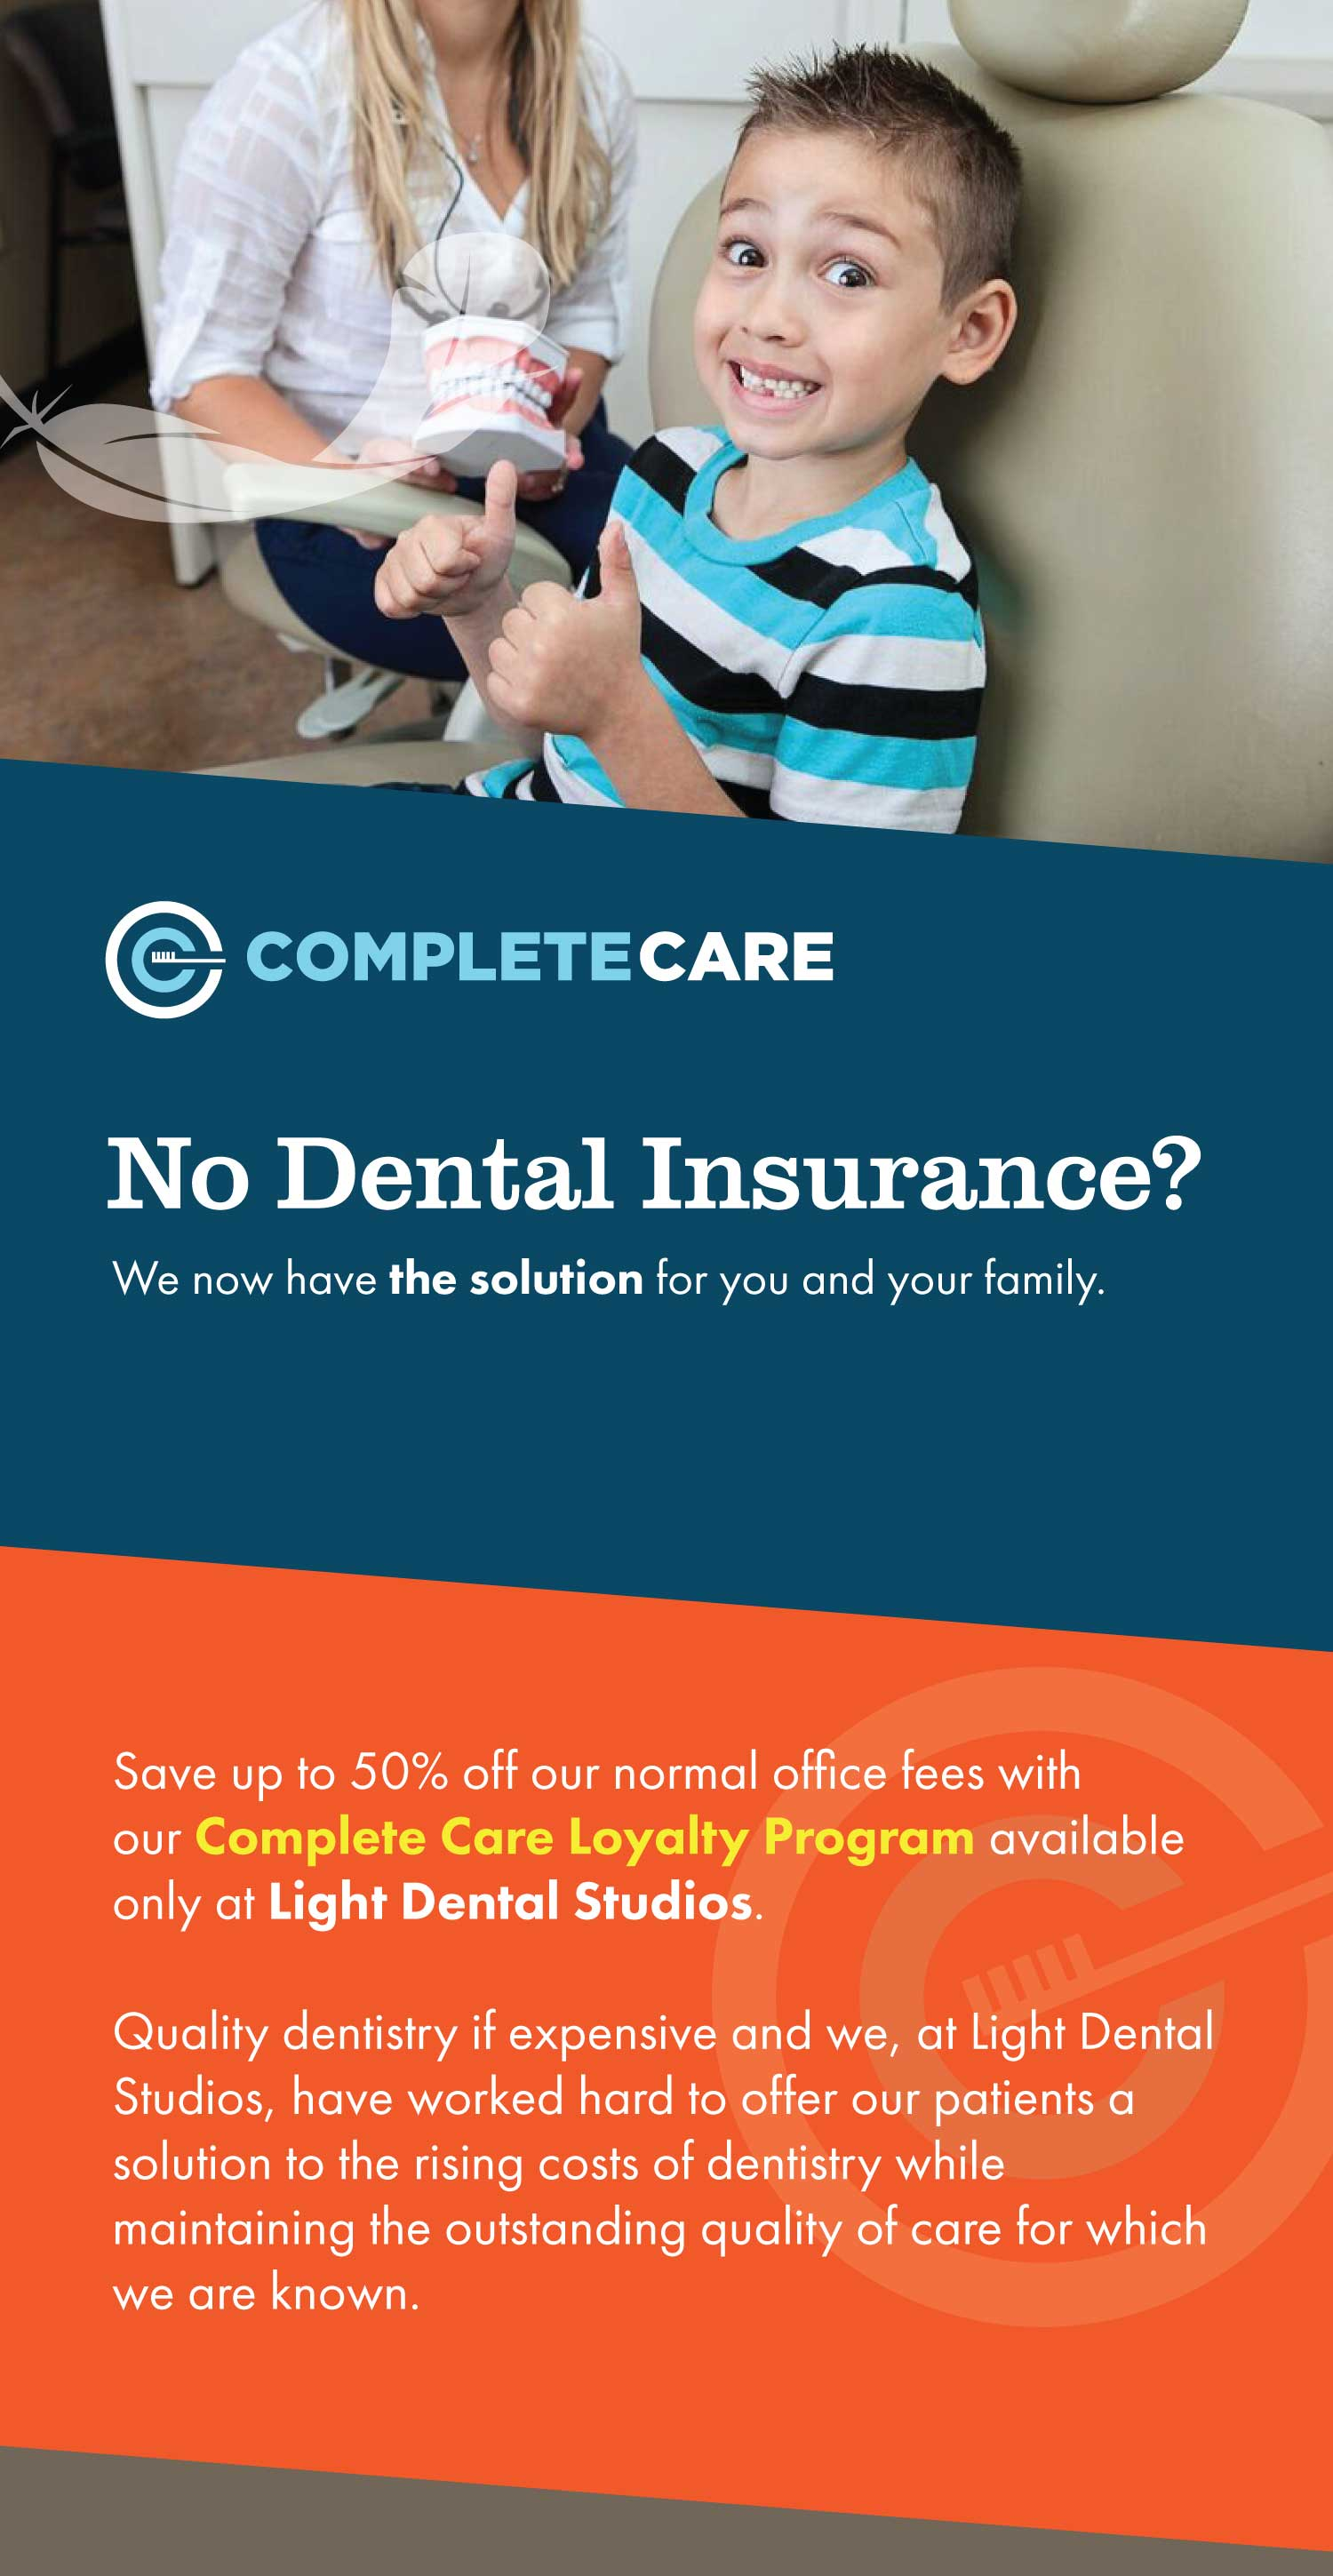 Complete Care Loyalty Program